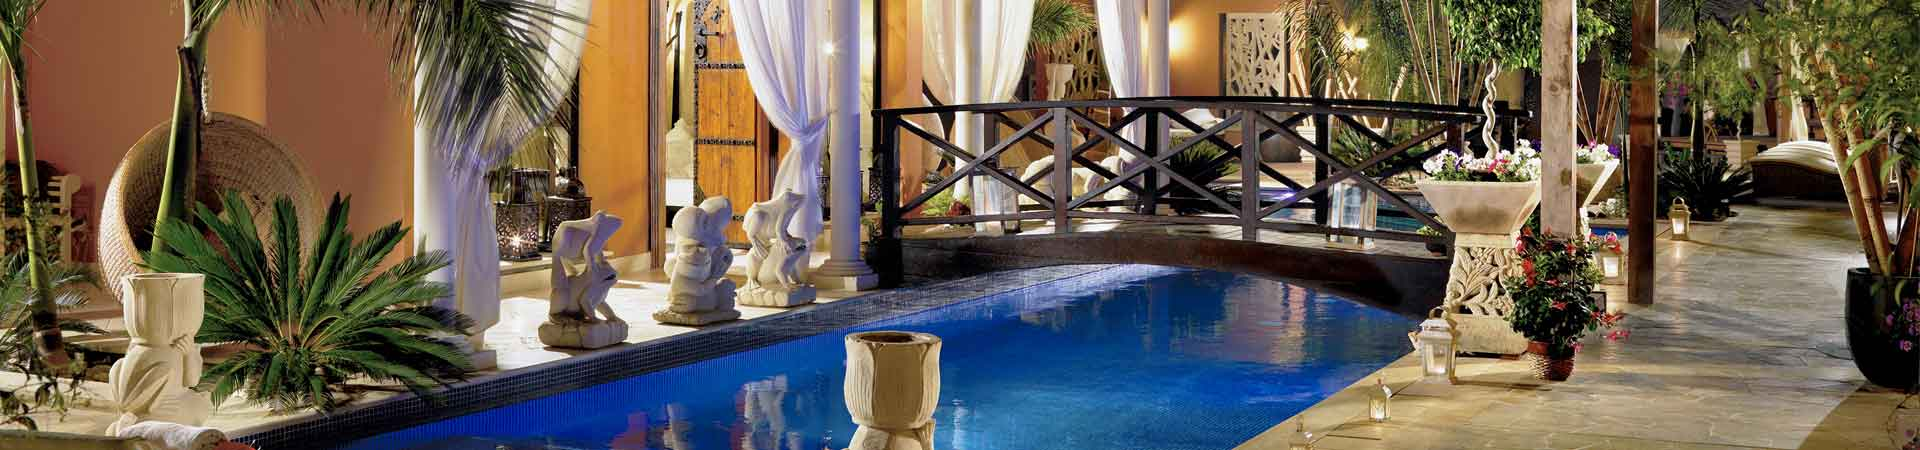 https://www.goodmorningtenerife.com/wp-content/uploads/2015/01/01_slide_hotel-Royal-Garden-Villas-Spa.jpg